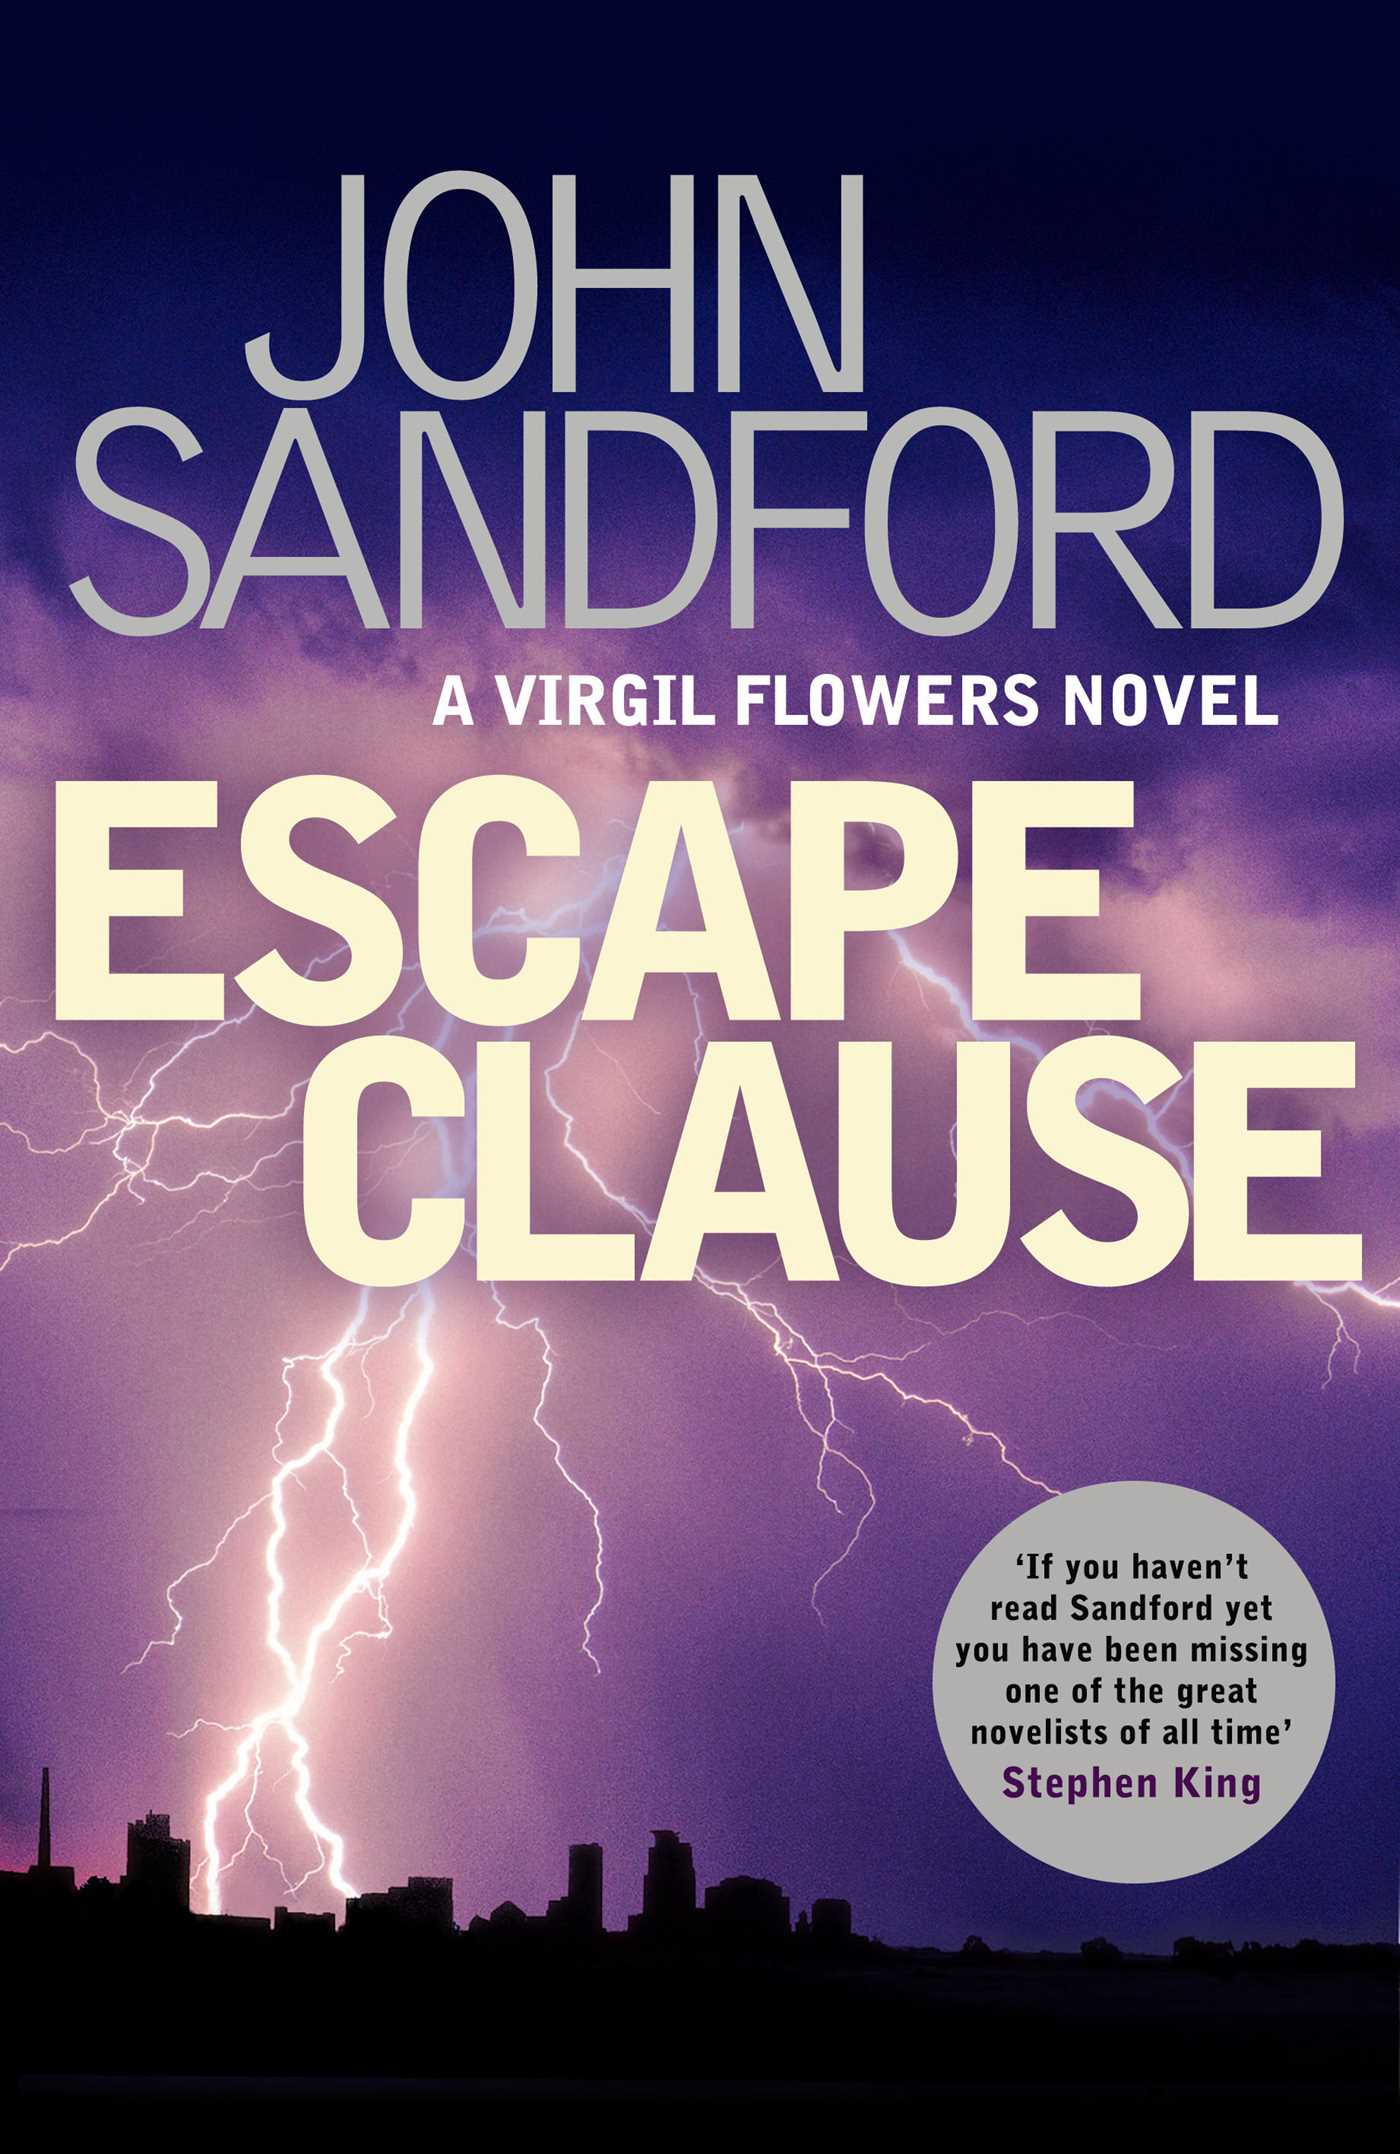 Escape Clause Book by John Sandford ficial Publisher Page